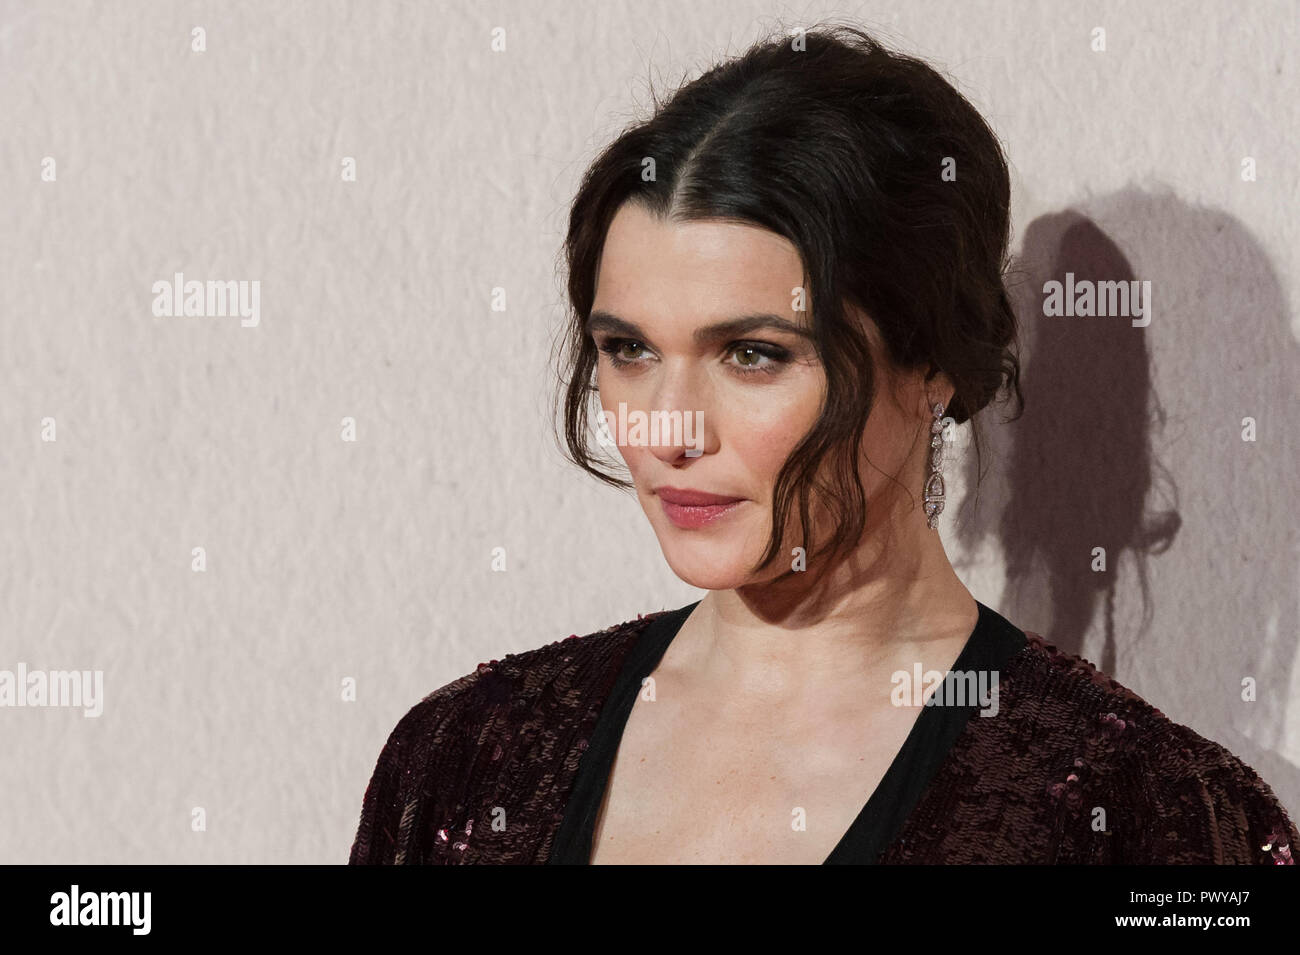 LONDON, UNITED KINGDOM - OCTOBER 18:  Rachel Weisz attends the UK film premiere of 'The Favourite' at BFI Southbank during the 62nd London Film Festival American Express Gala. October 18, 2018 in London, United Kingdom. Stock Photo